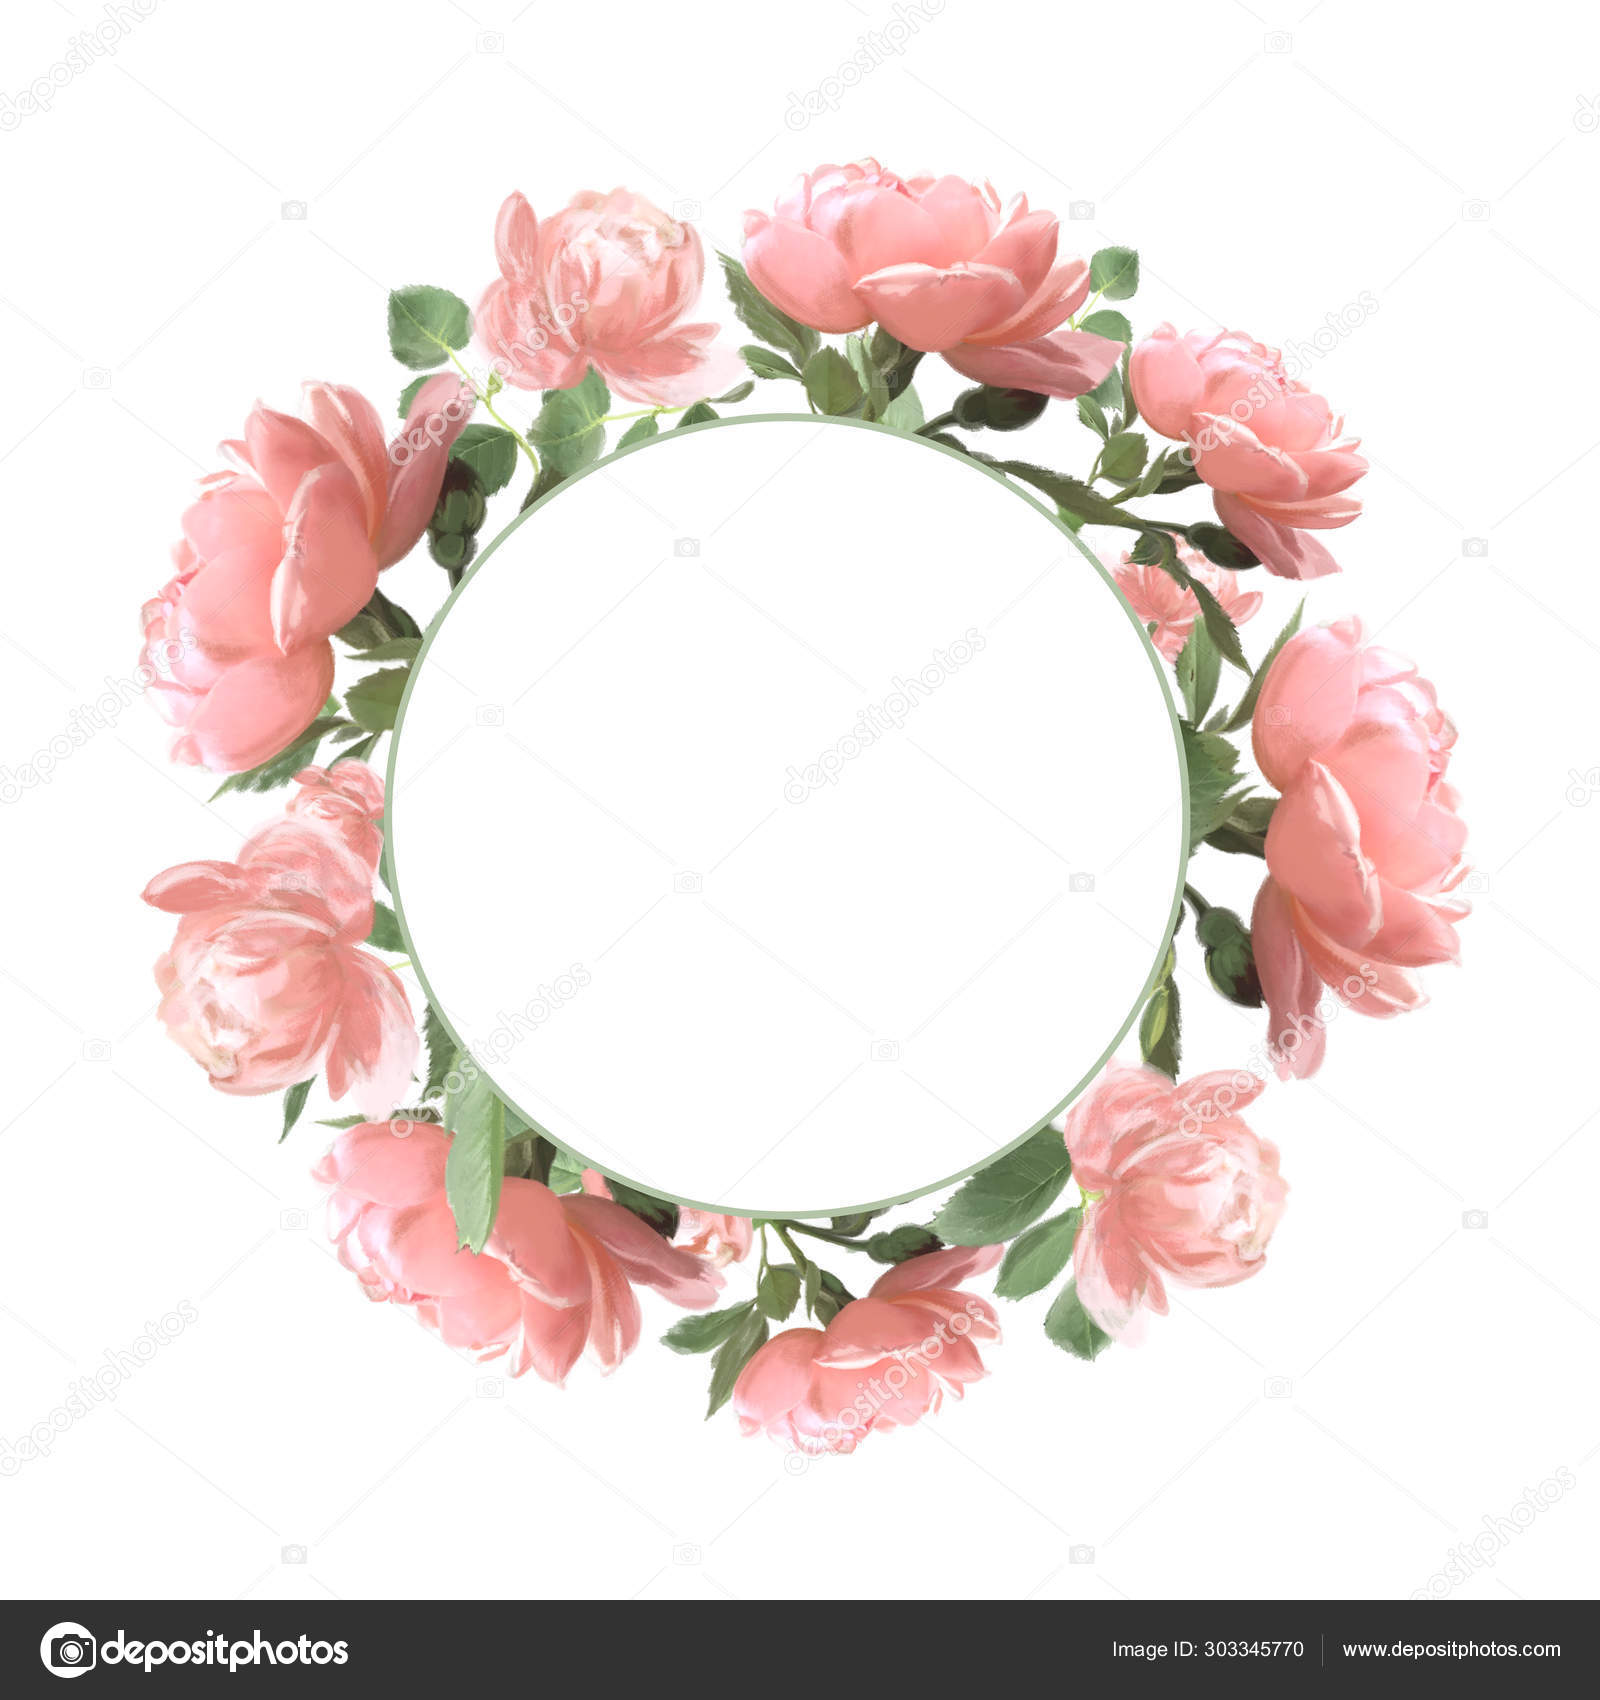 Beautiful Pink Roses Wreath Clipart Vintage Floral Frame Wreath